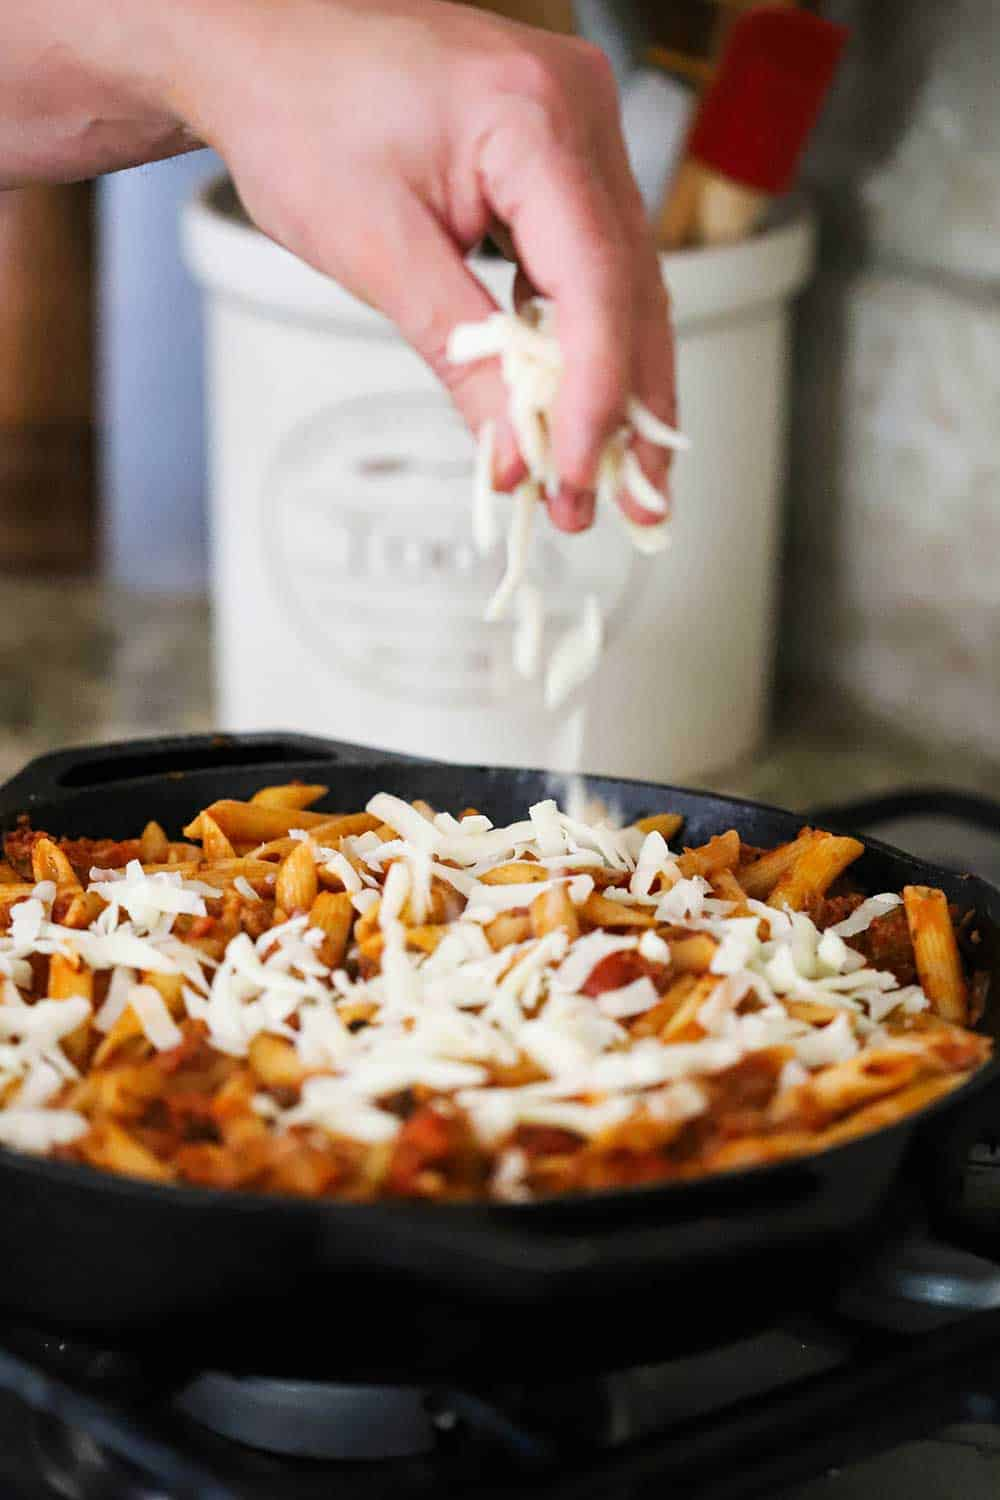 A hand sprinkling grated mozzarella cheese over a pan filled with pasta and sauce.